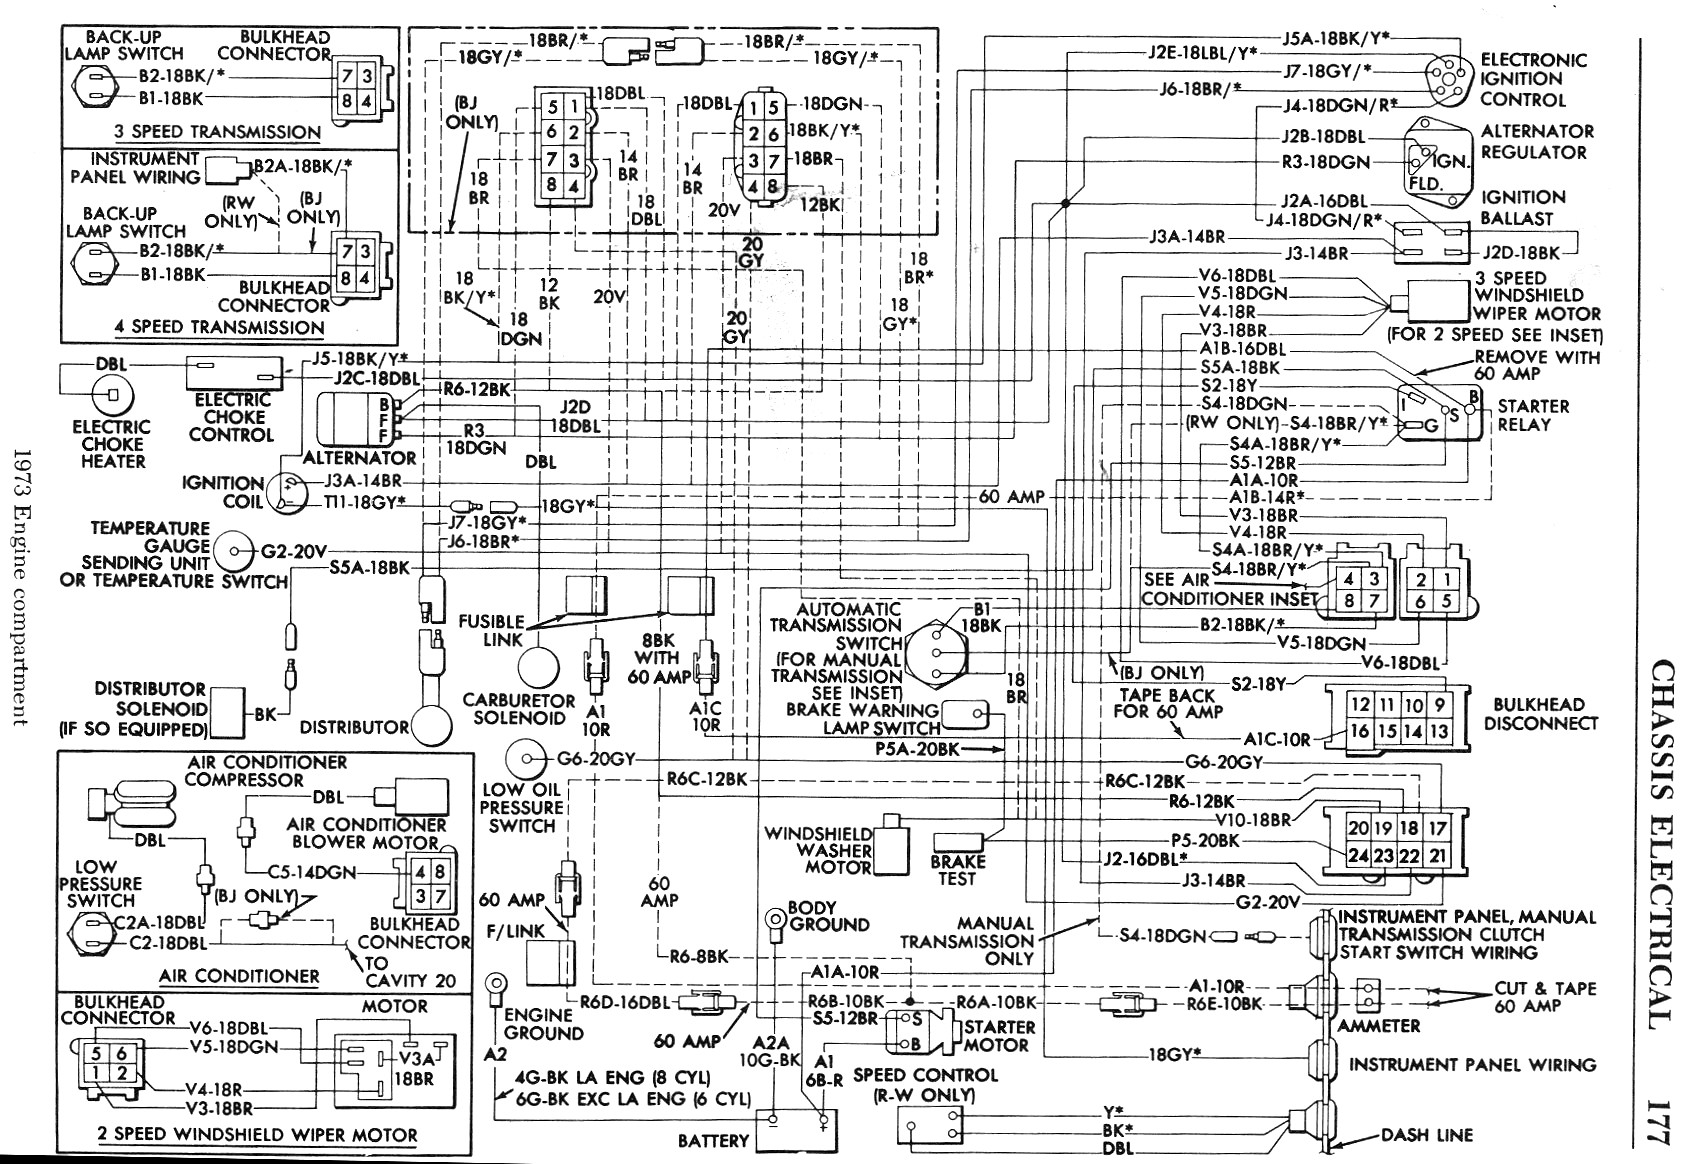 5098823 73B BodyEngineCompartmentWiringDiagram mopar wiring diagram powerflex 755 wiring diagrams \u2022 free wiring Wiring 5 Wire Door Lock at fashall.co